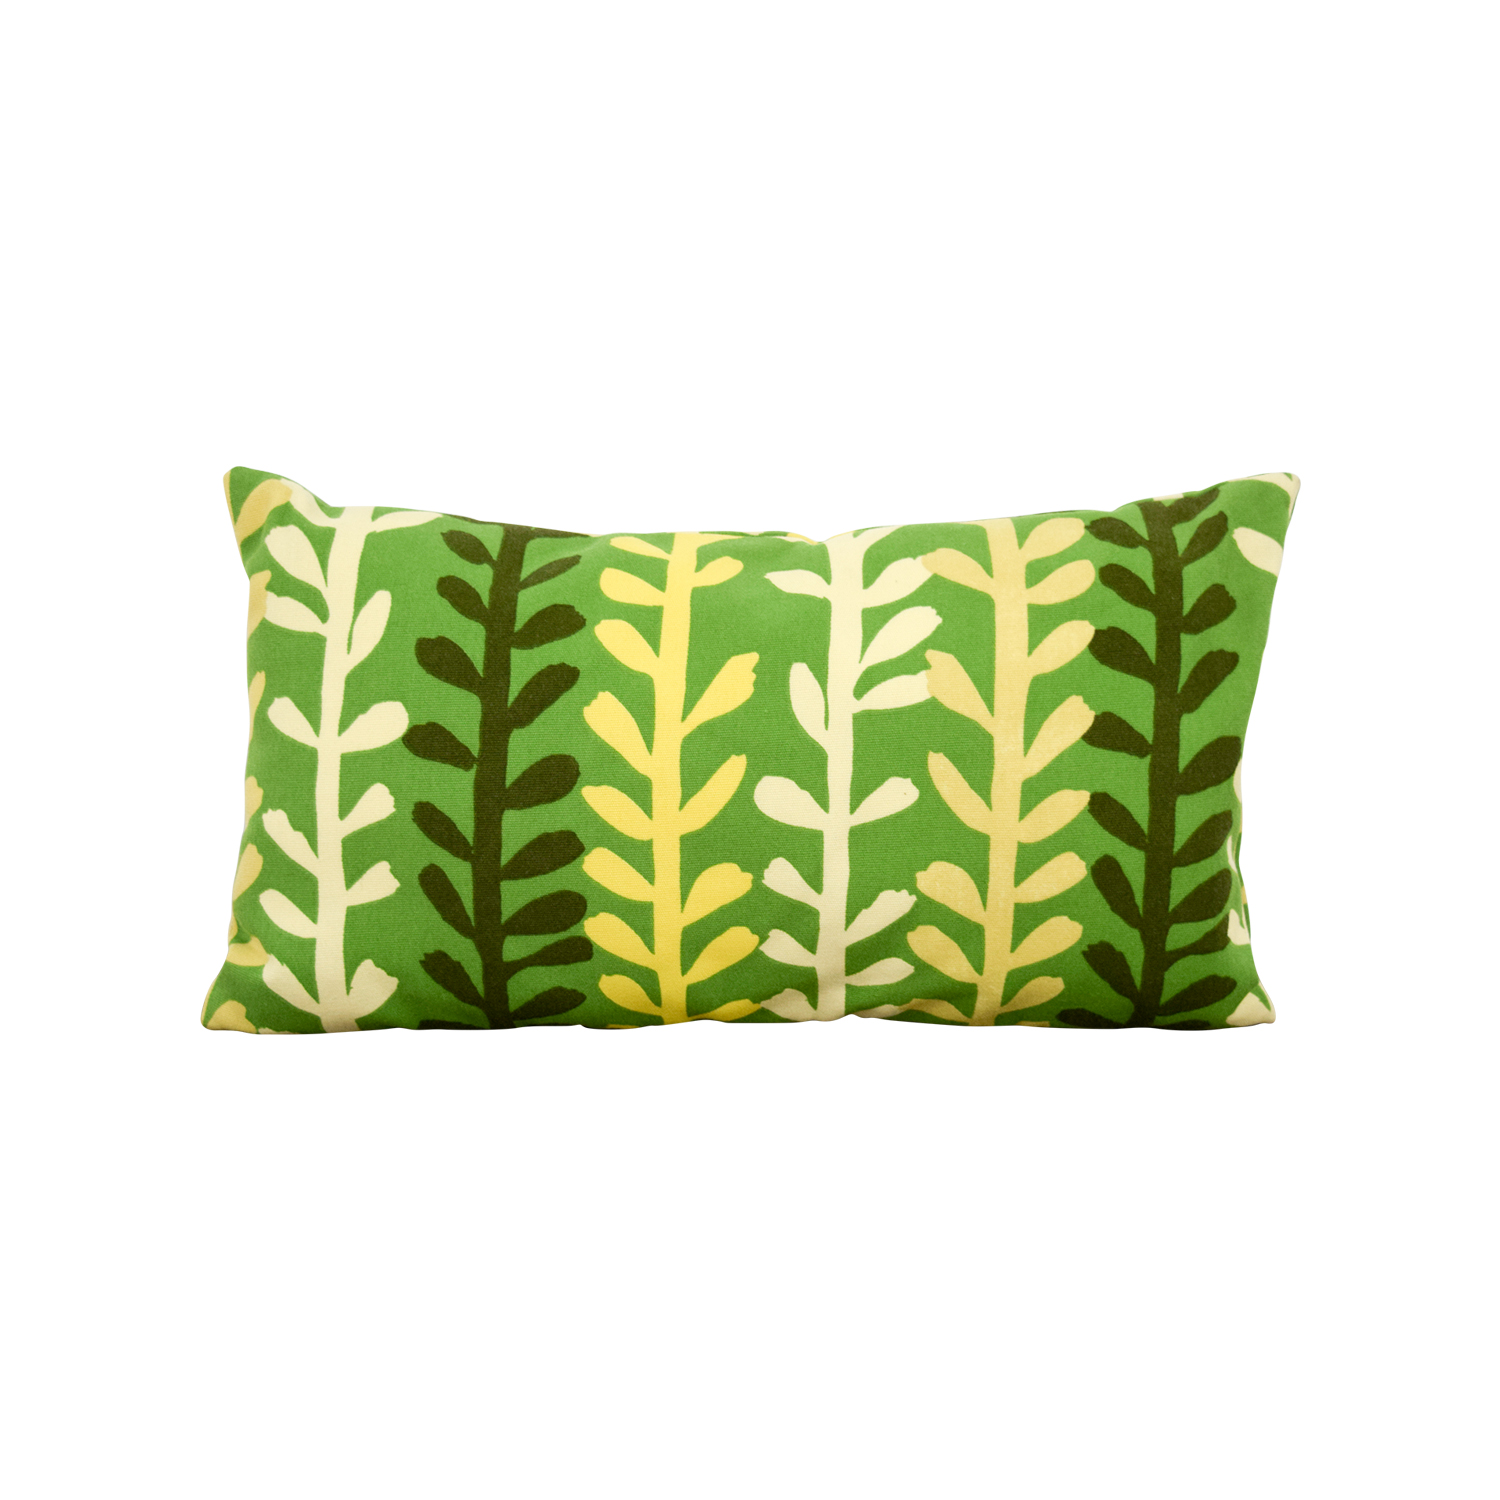 West Elm West Elm Green Stem Pillow nj